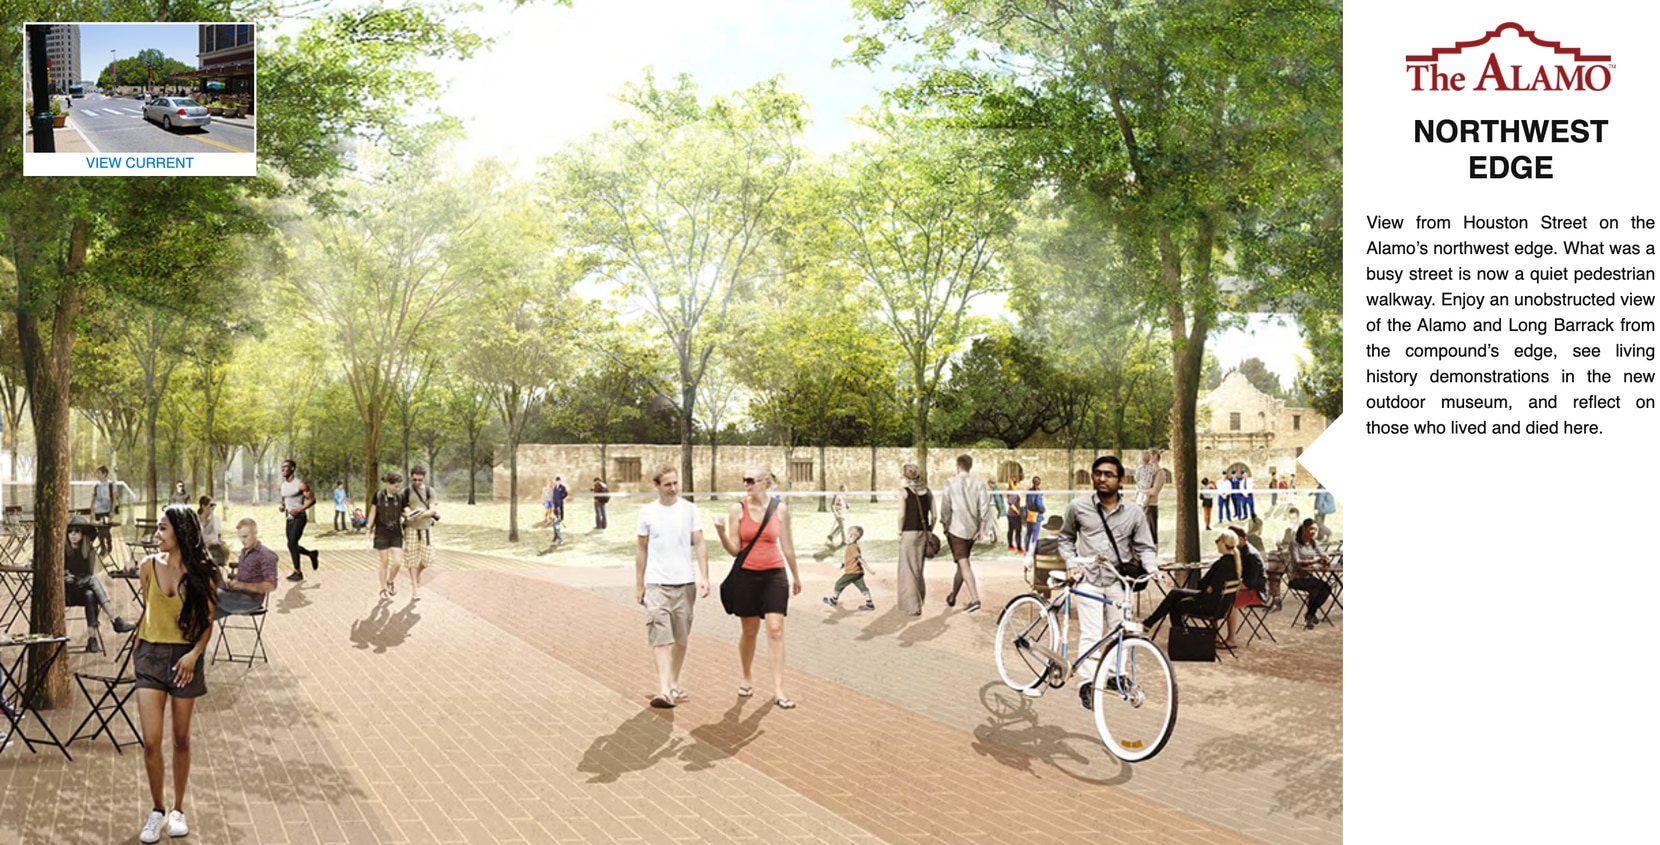 """View of a pedestrian walkway planned at the Alamo's northwest edge. On Thursday, Lt. Gov. Dan Patrick criticized state Land Commissioner George P. Bush's handling of Alamo restorations. The latest architectural design, Patrick said, """"looks like a massive urban park with hundreds of trees — more like Central Park in New York City than Alamo Plaza."""""""